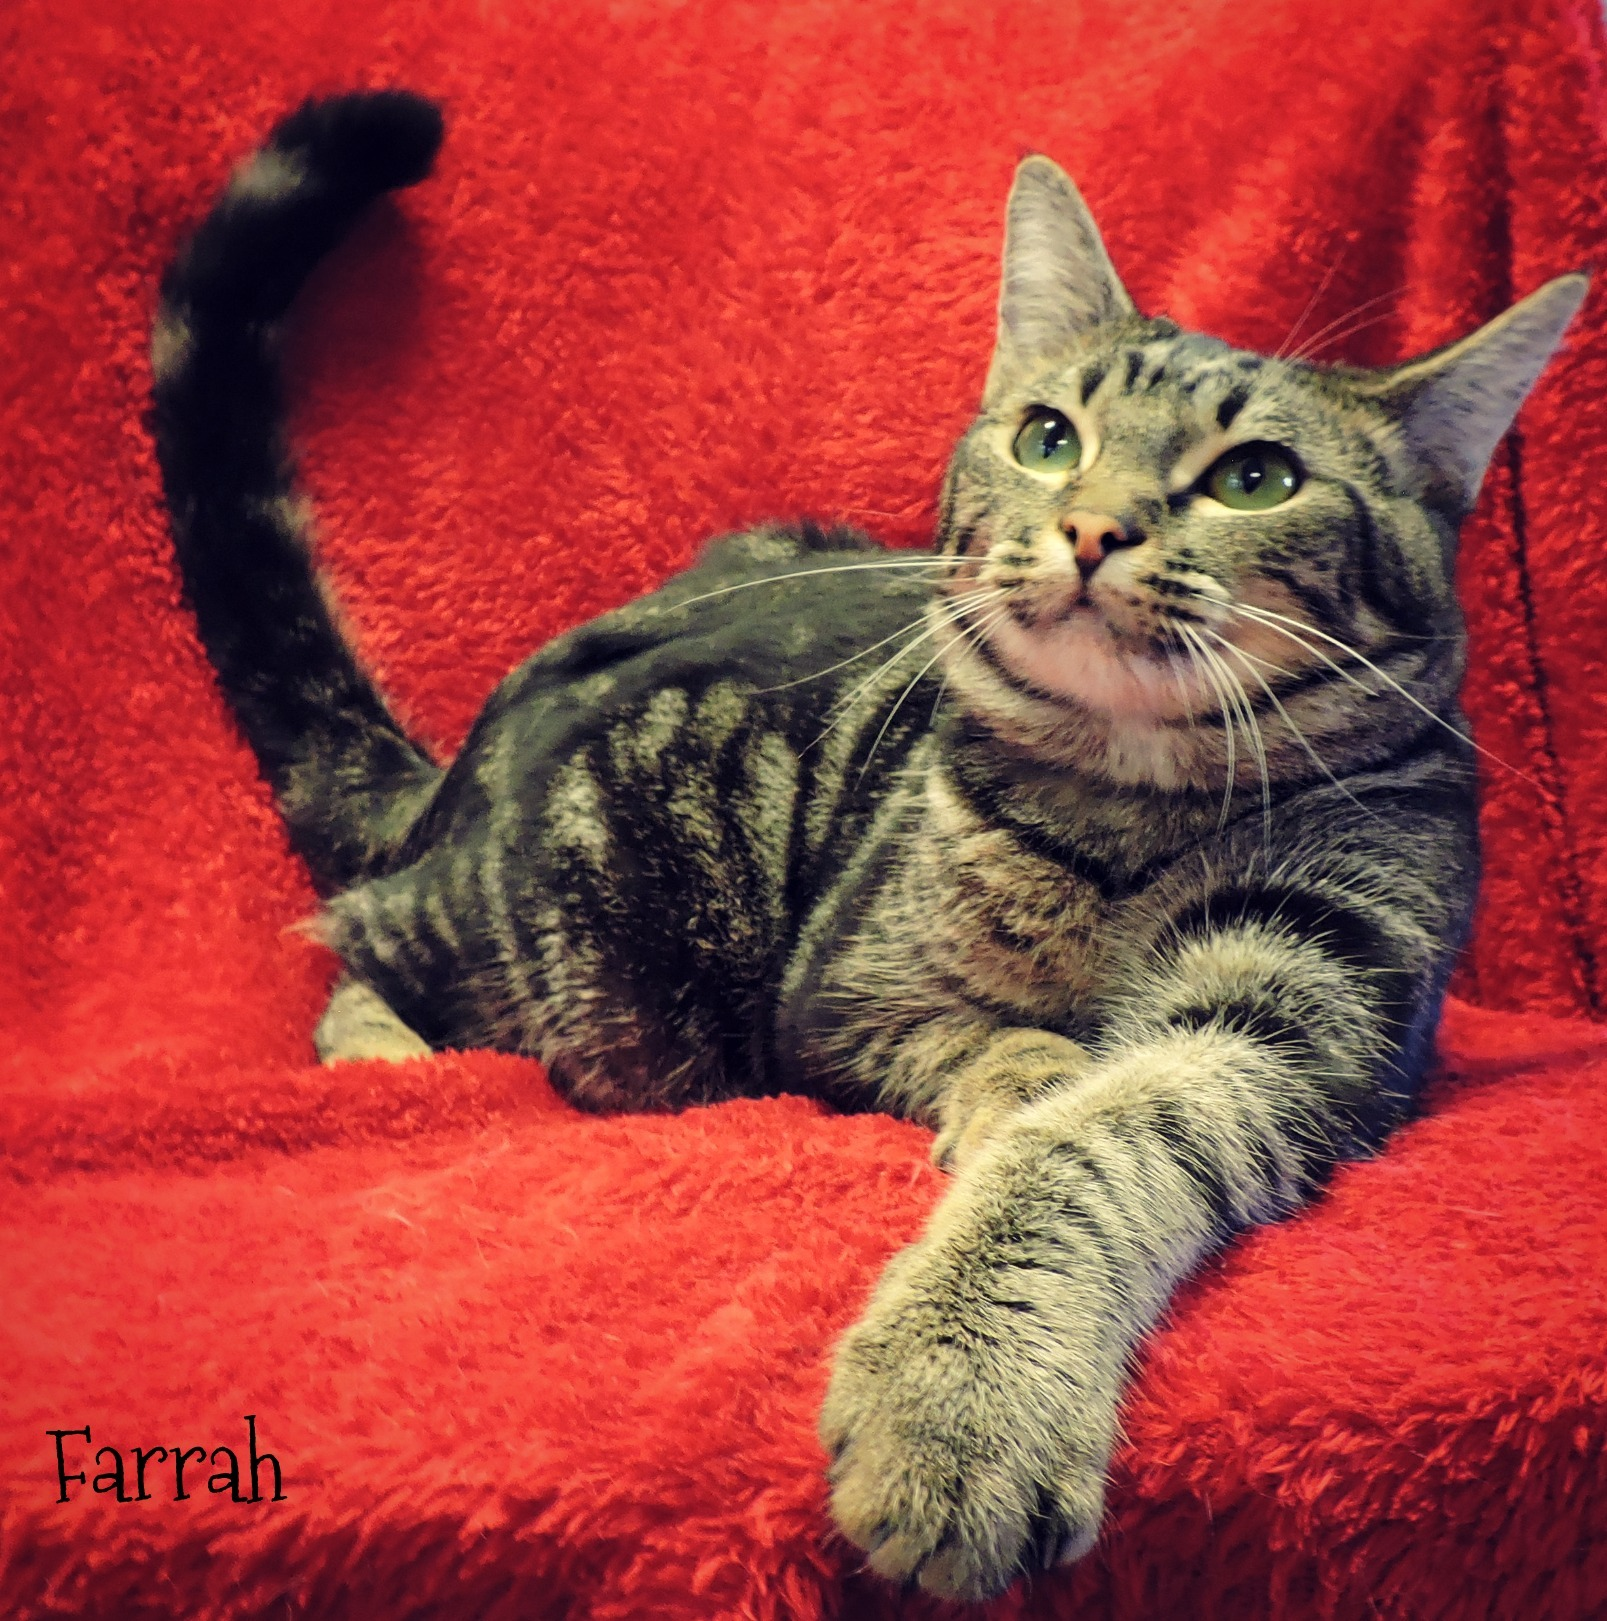 Farrah - Stunning classic tabby youngster, who's somewhat shy but she can be quite playful and gets along with the other cats. Leland's girlfriend. -